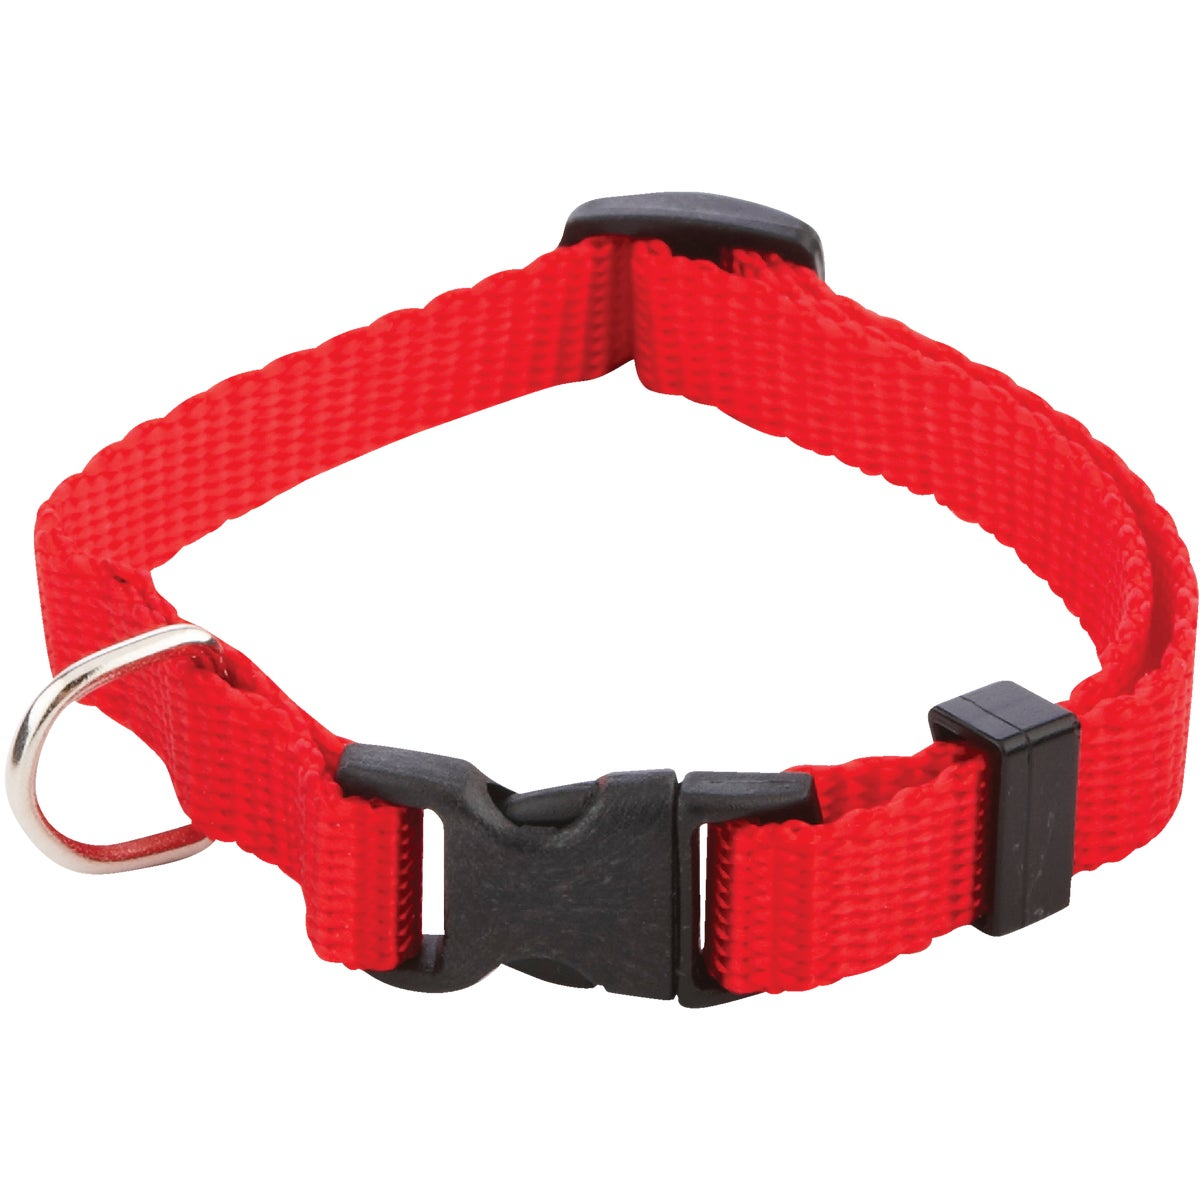 3/8X8-12 ADJ COLLAR - 31401 by Westminster Pet